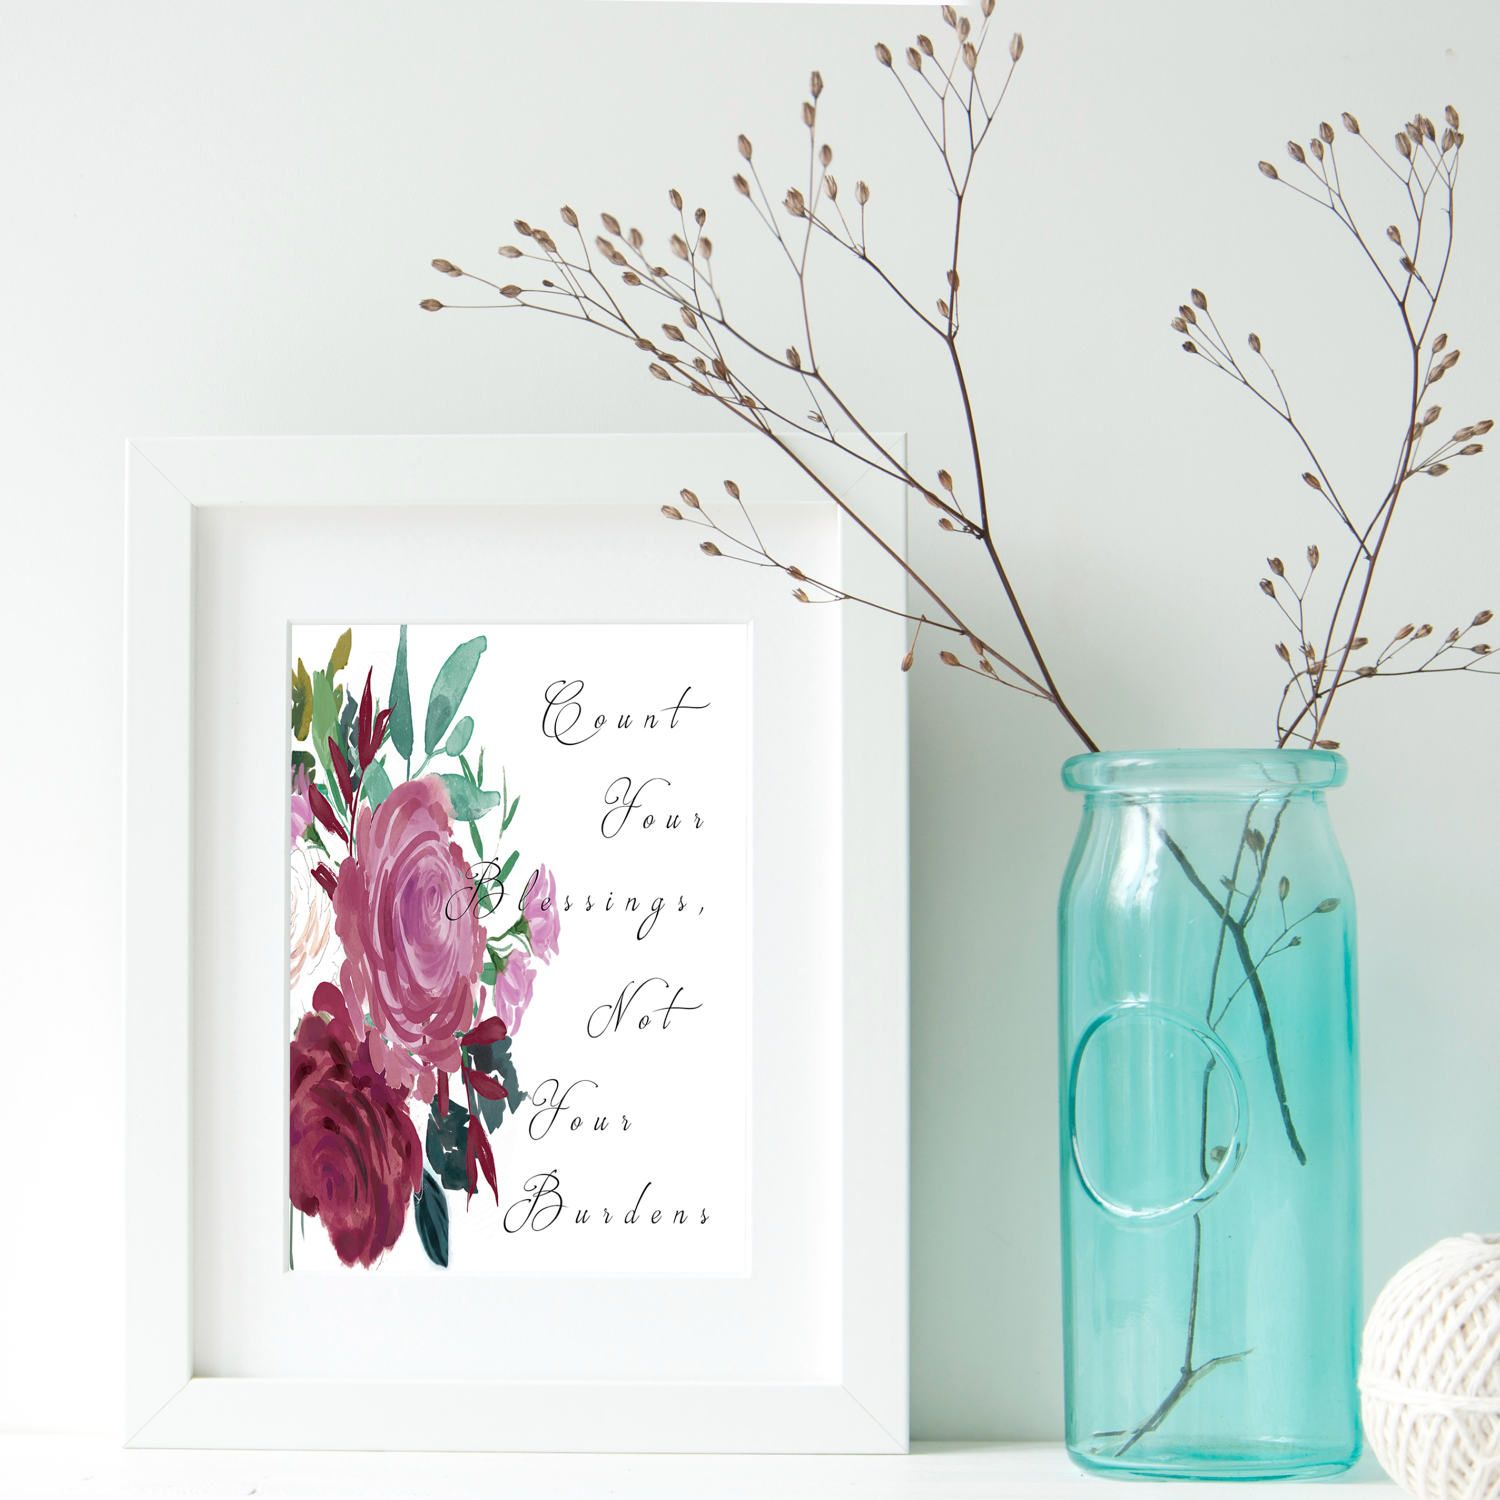 Count Your Blessings Not Your Burdens Watercolor Floral